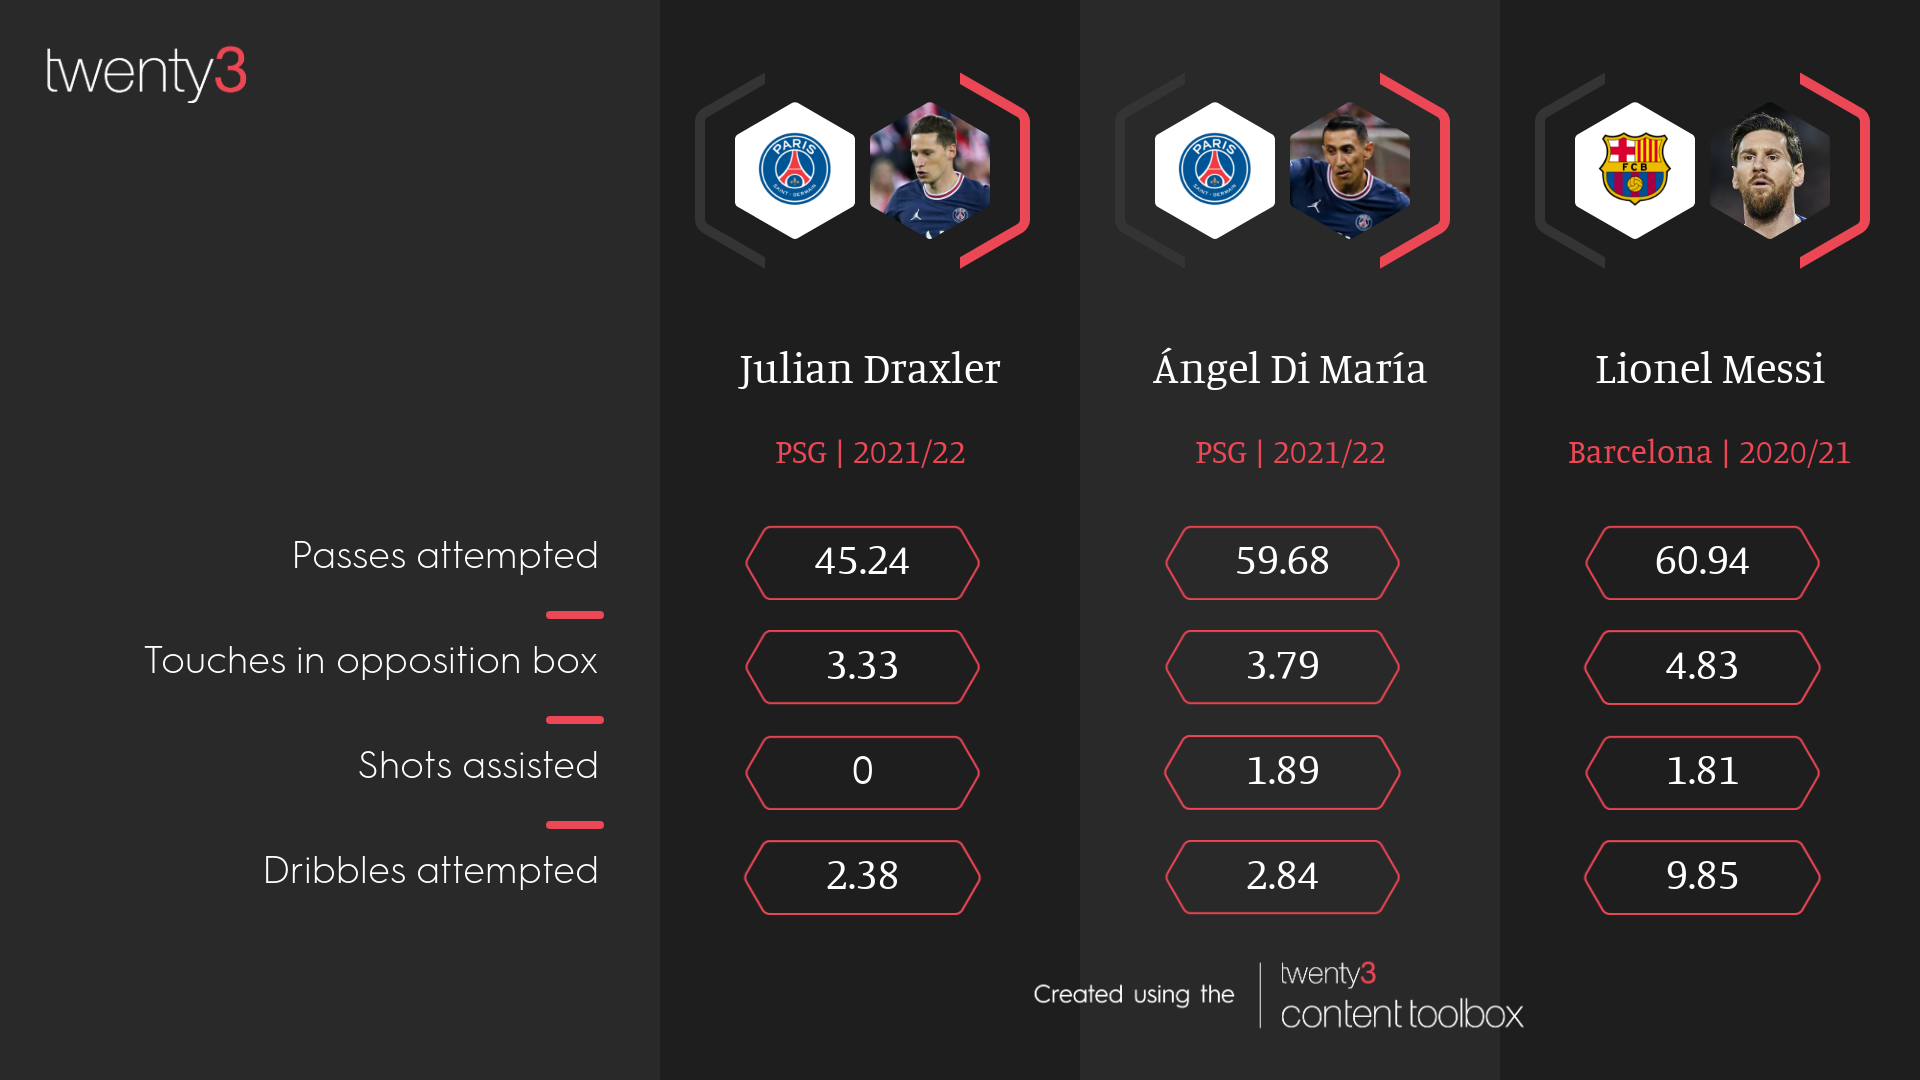 How Lionel Messi compares with what Julian Draxler and Angel Di Maria have averaged for PSG so far this season.